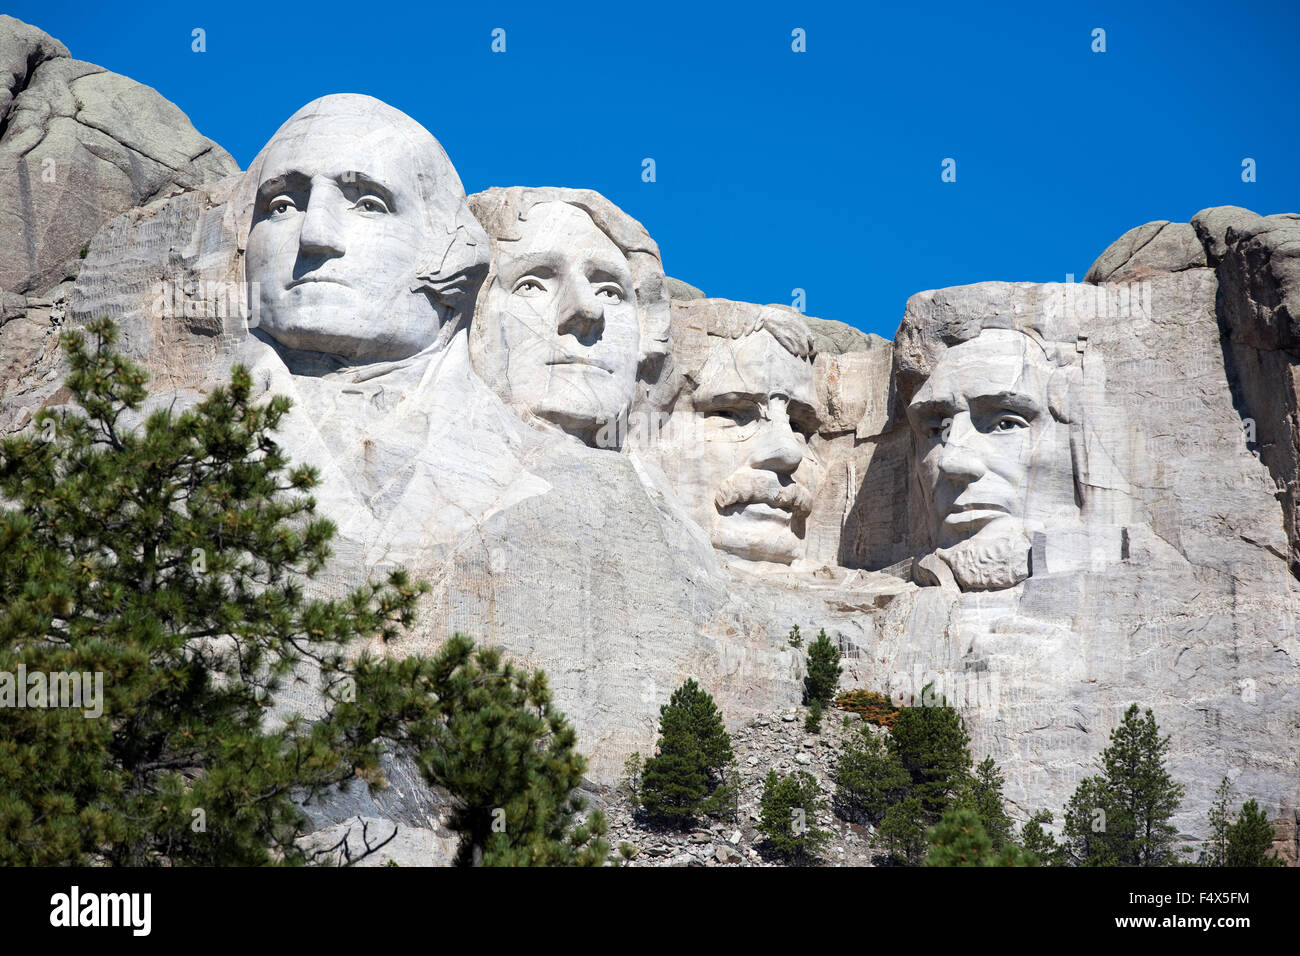 Mt. Rushmore National Memorial is located in southwestern South Dakota, USA. - Stock Image